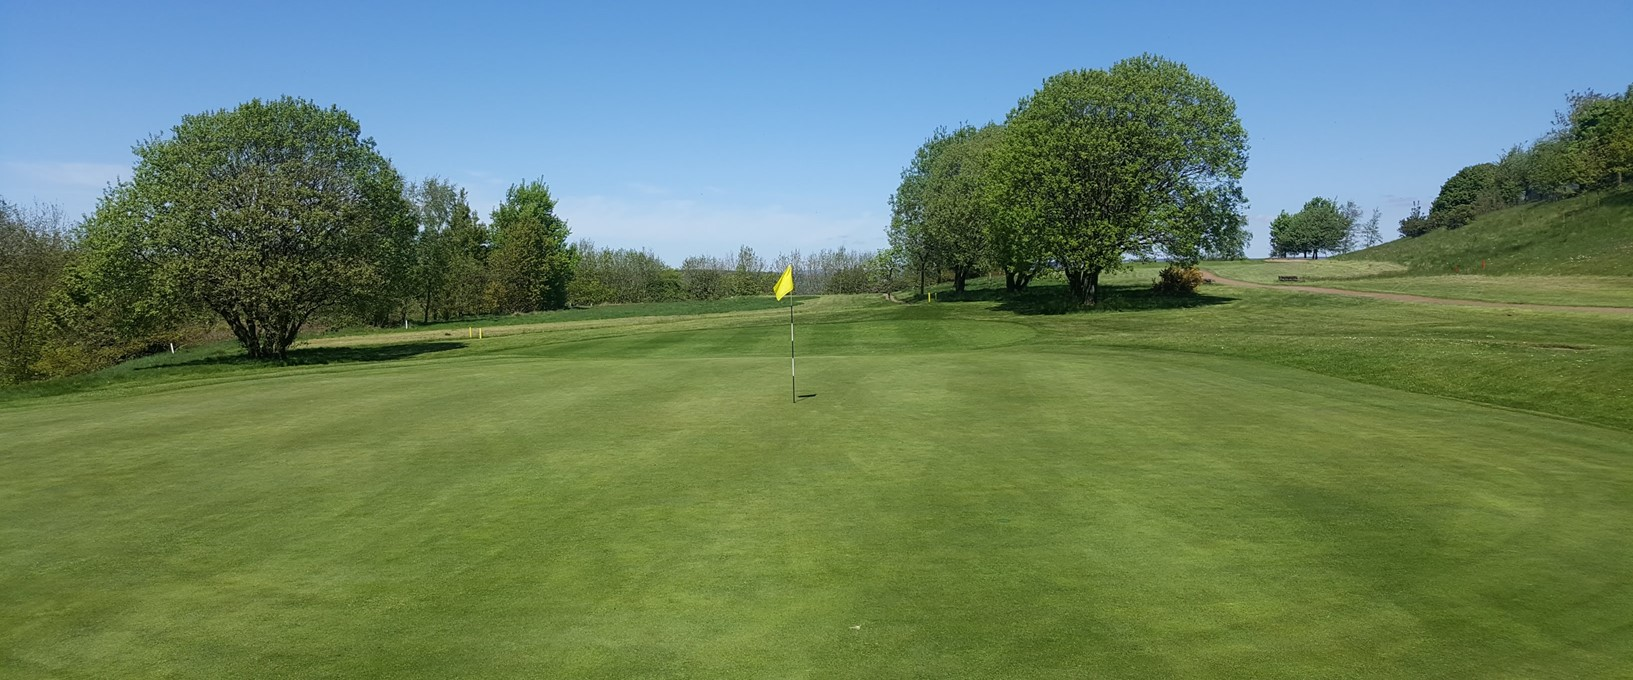 A view from behind the 5th green, one of the Hawtree designed holes, at West Bradford